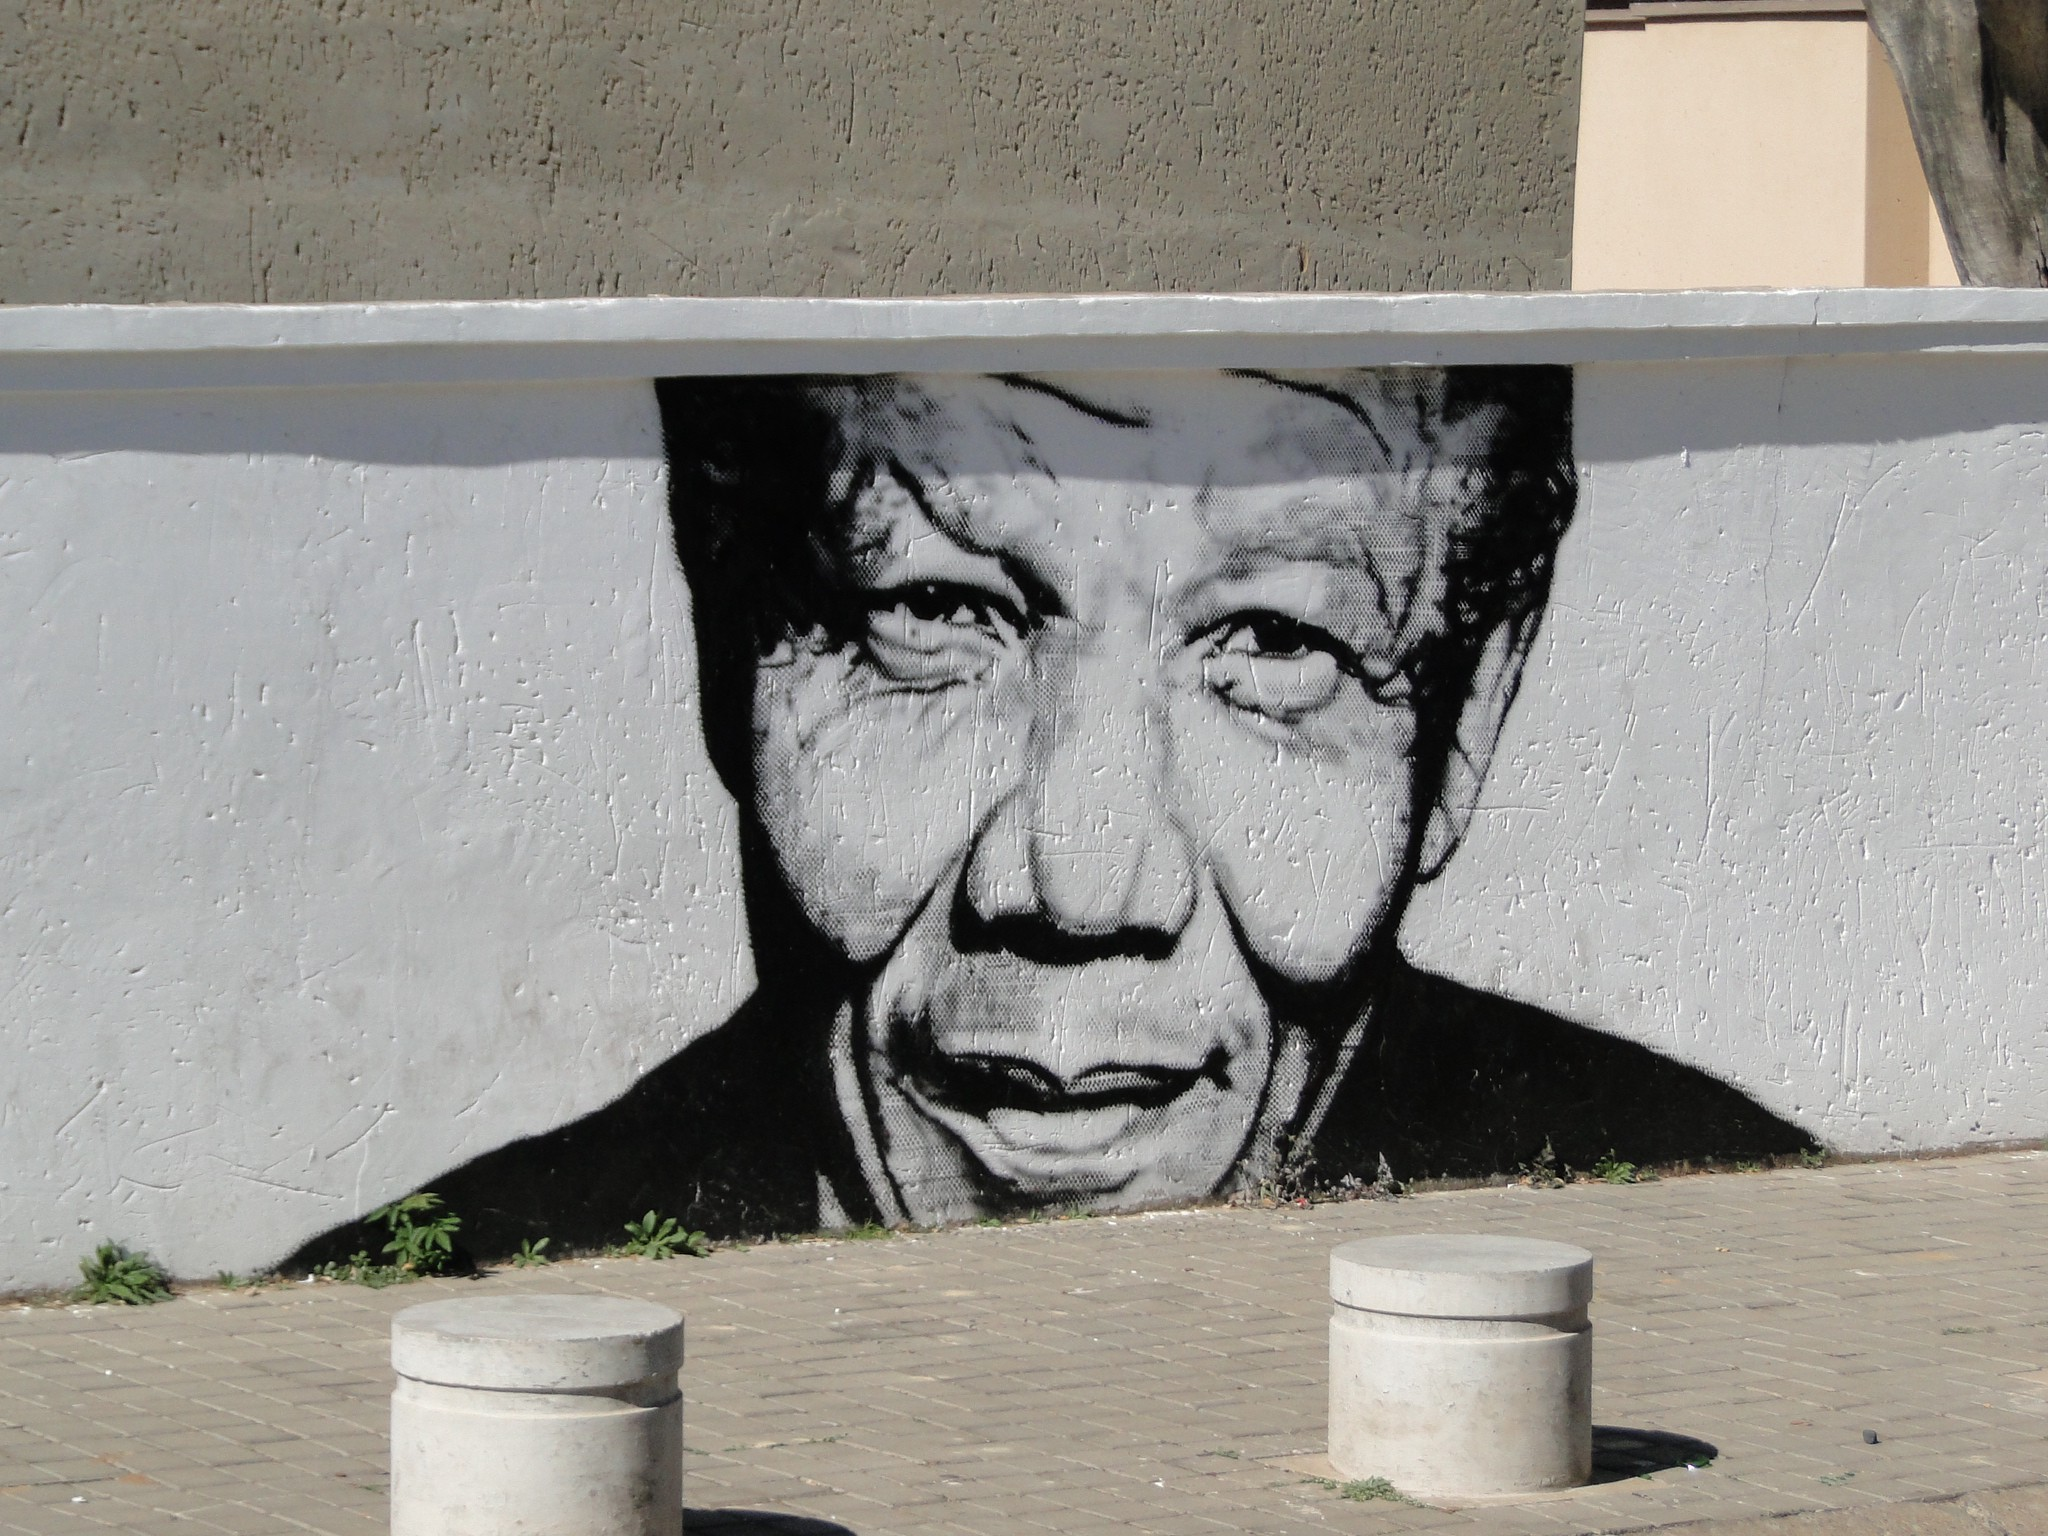 A mural of Nelson Mandela in the Maboneng neighborhood of Johannesburg. Photo by Karla J. Strand. All rights reserved.